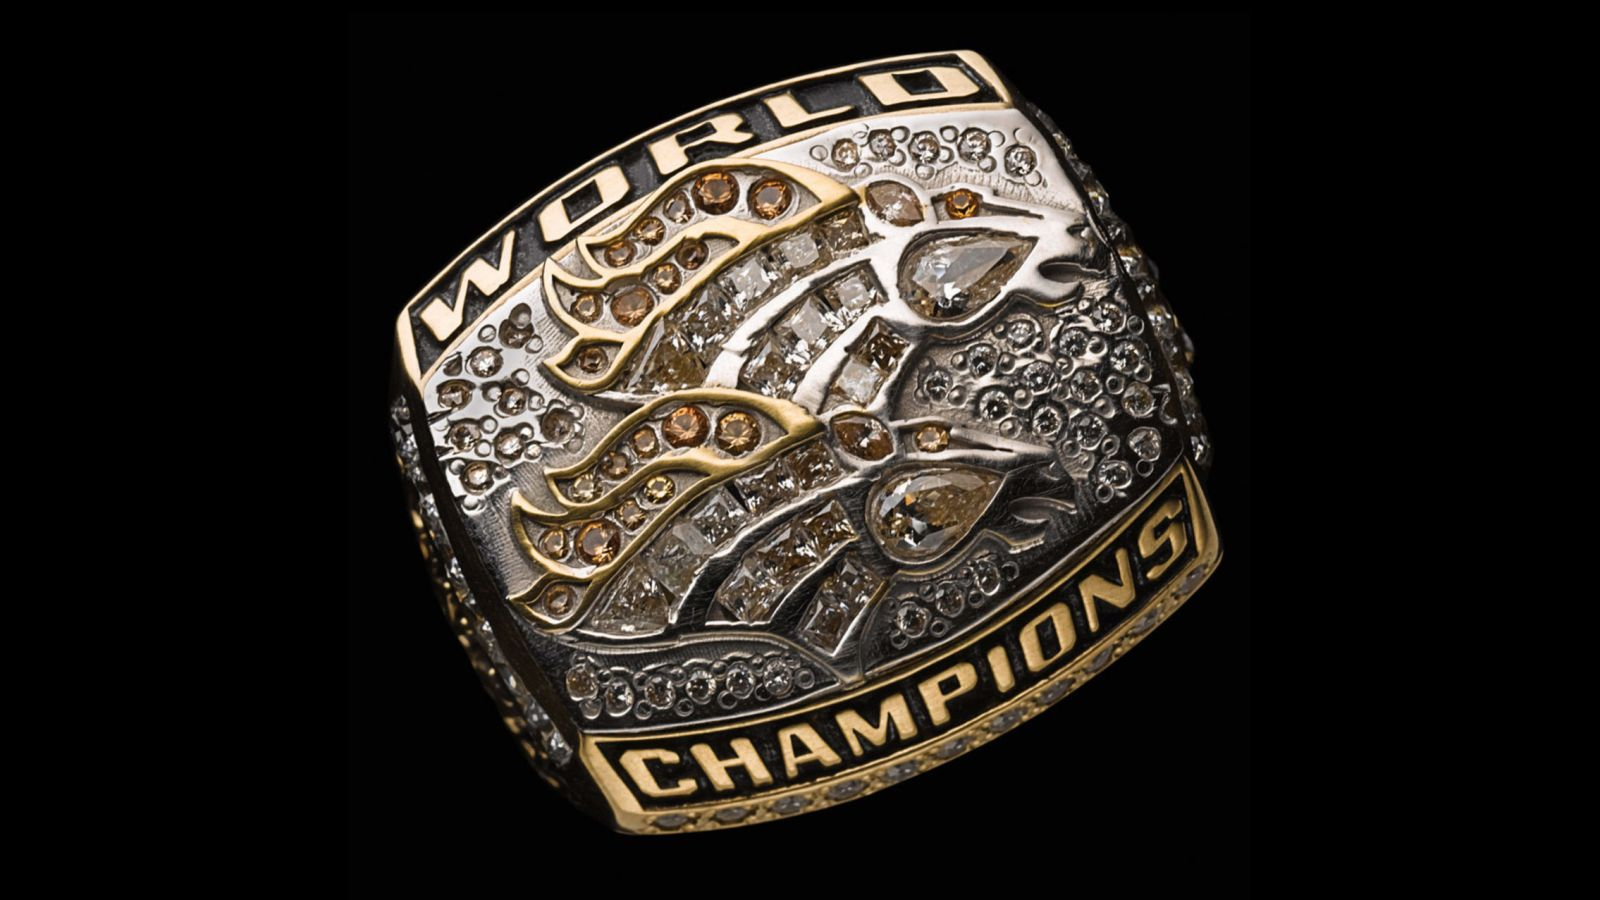 1998 Denver Broncos Super Bowl Championship Ring